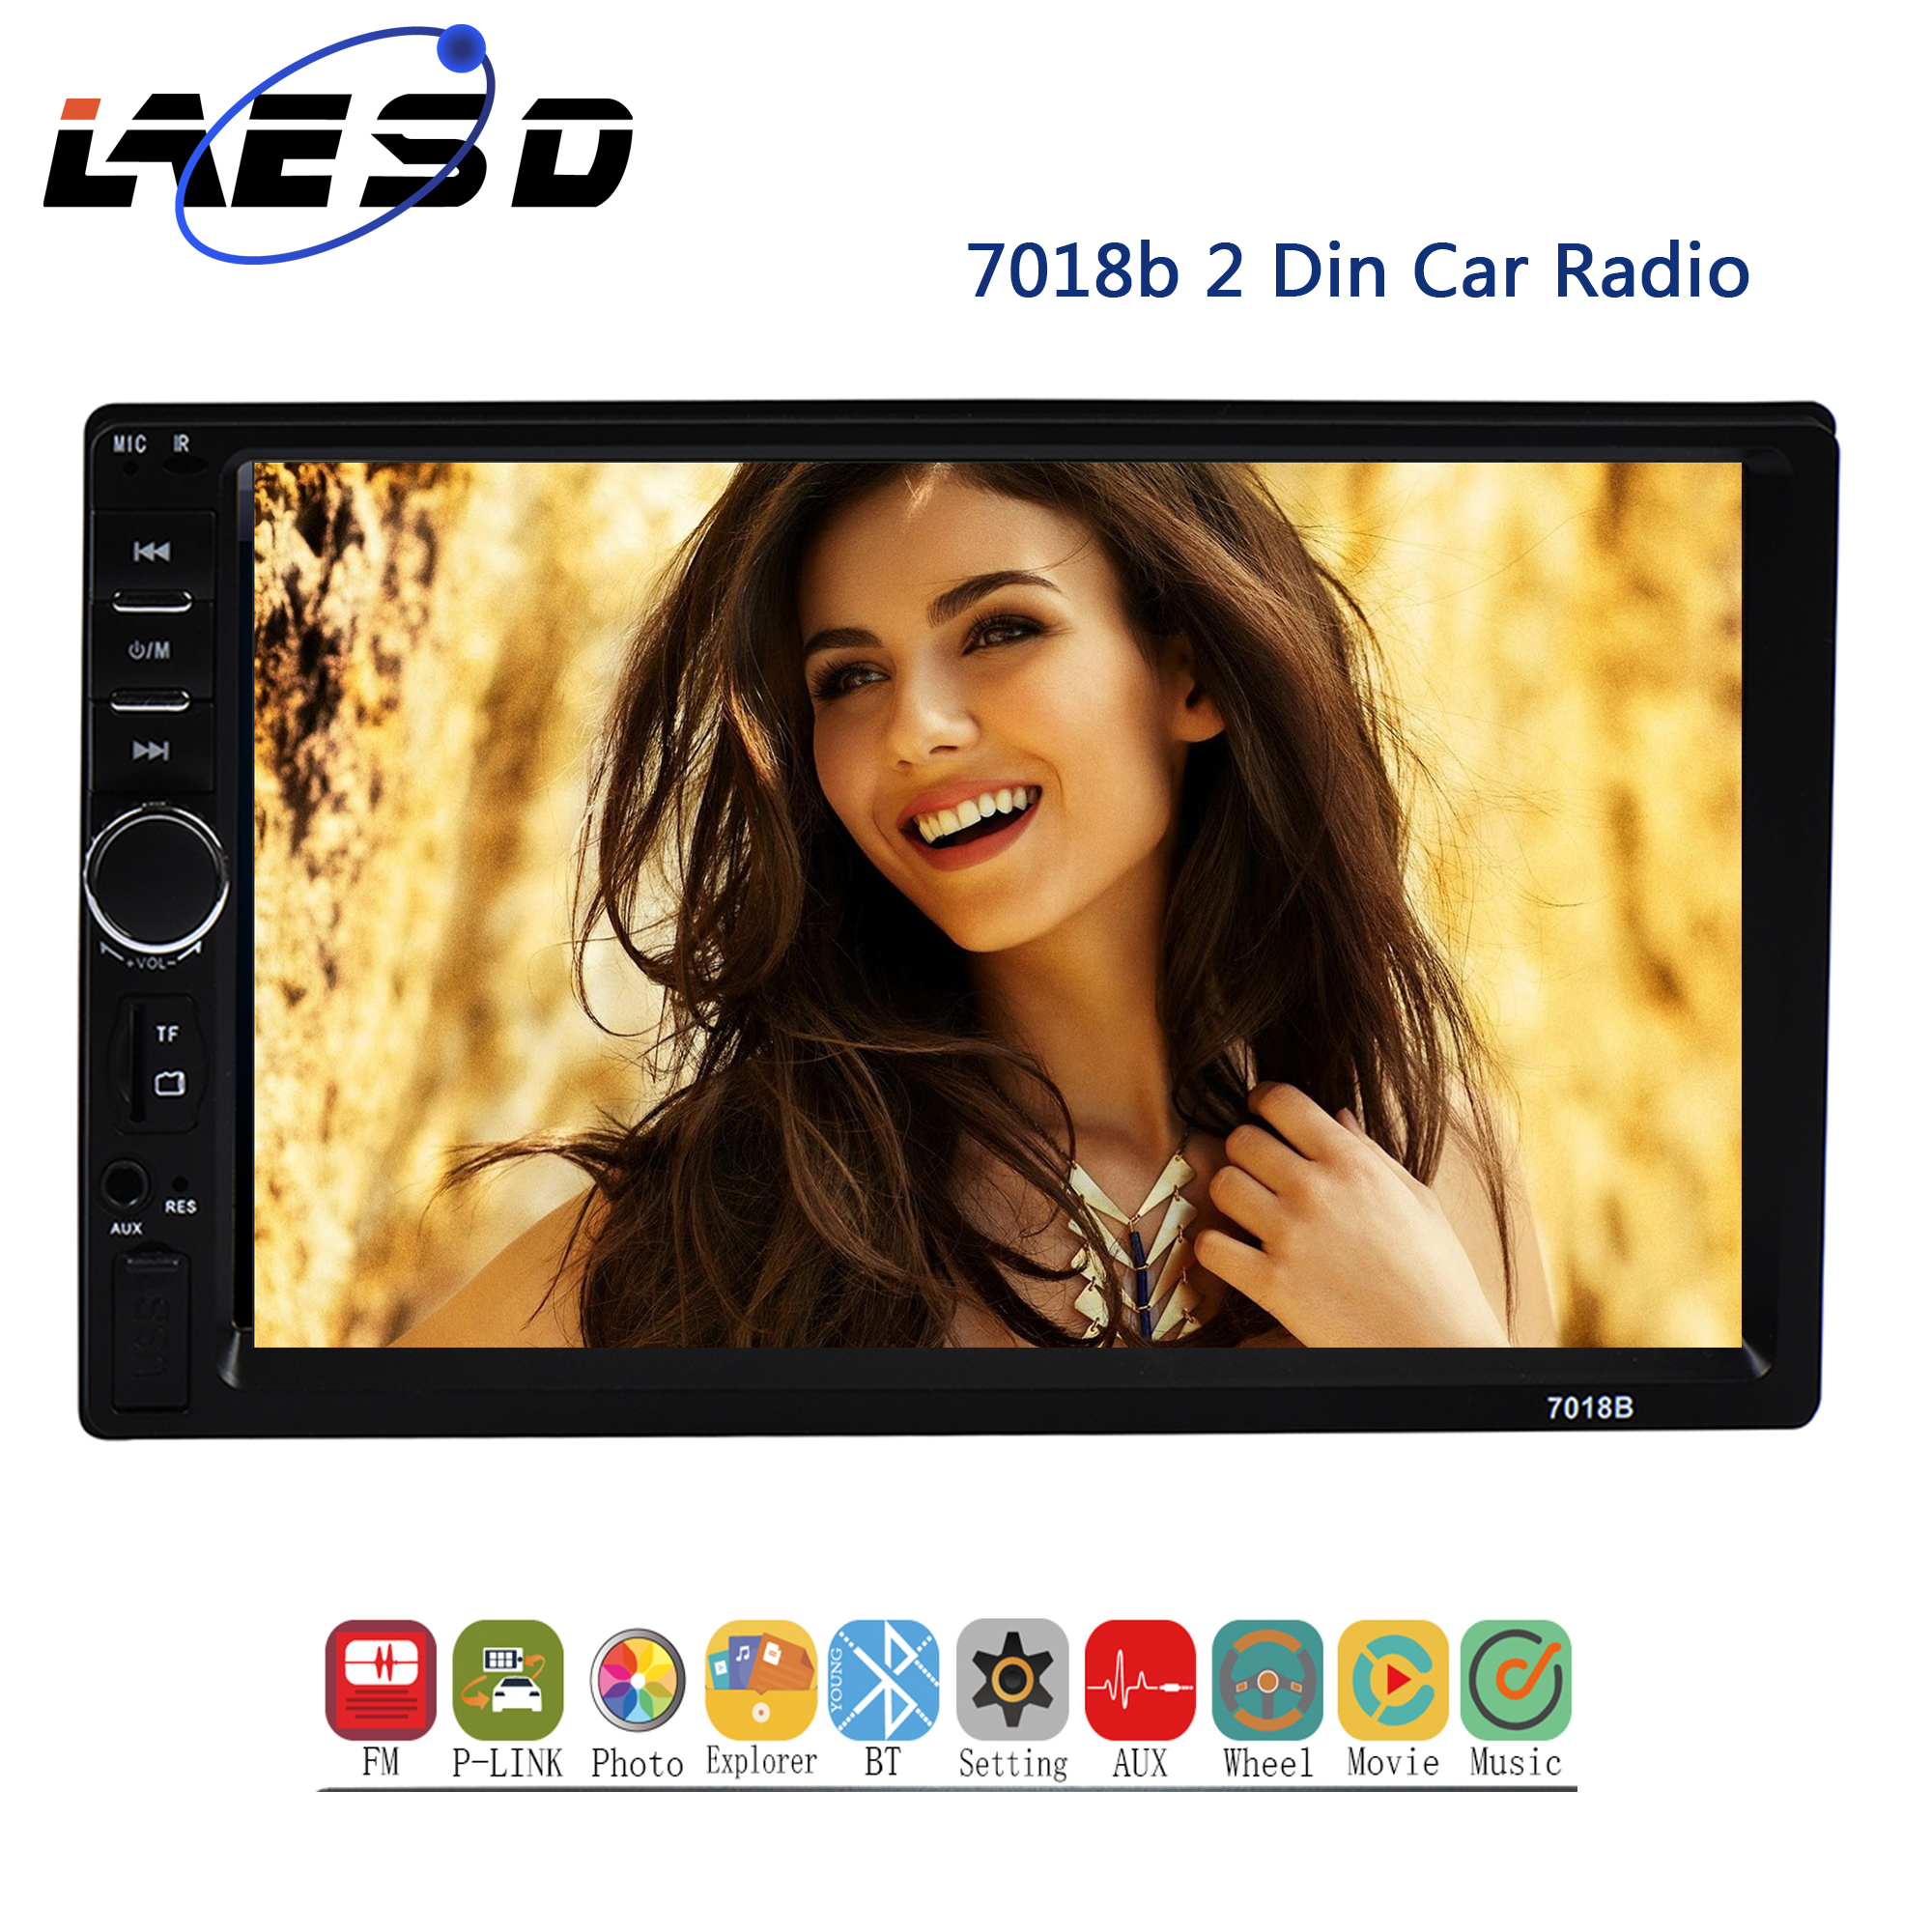 2Din Car MP5 Player 7018b Auto Radio 7'' HD Touch Screen 1080P FM AM TF USB Wince Sys Digital Stereo 2 din MP5 Aotomotivo Video